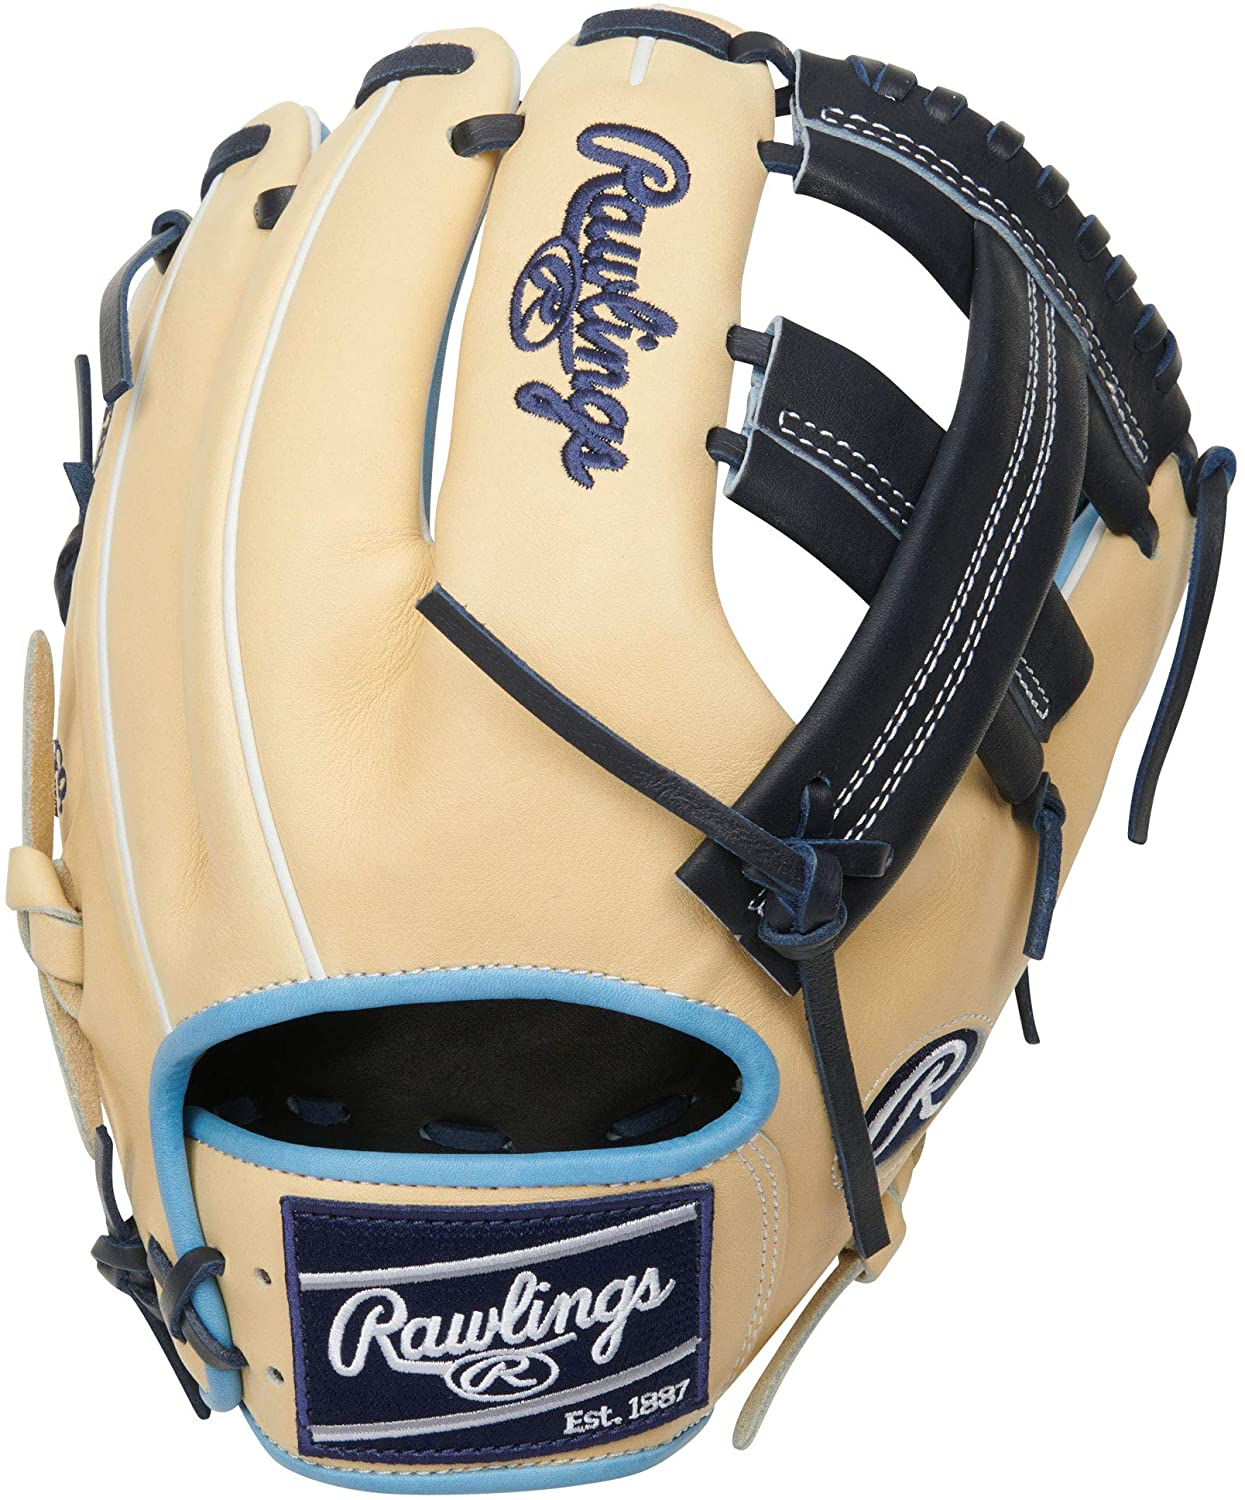 rawlings-heart-of-hide-11-5-i-web-baseball-glove-right-hand-throw PRO204-20CB-RightHandThrow Rawlings 083321702303 <span>Constructed from Rawlings world-renowned Heart of the Hide steer leather Heart